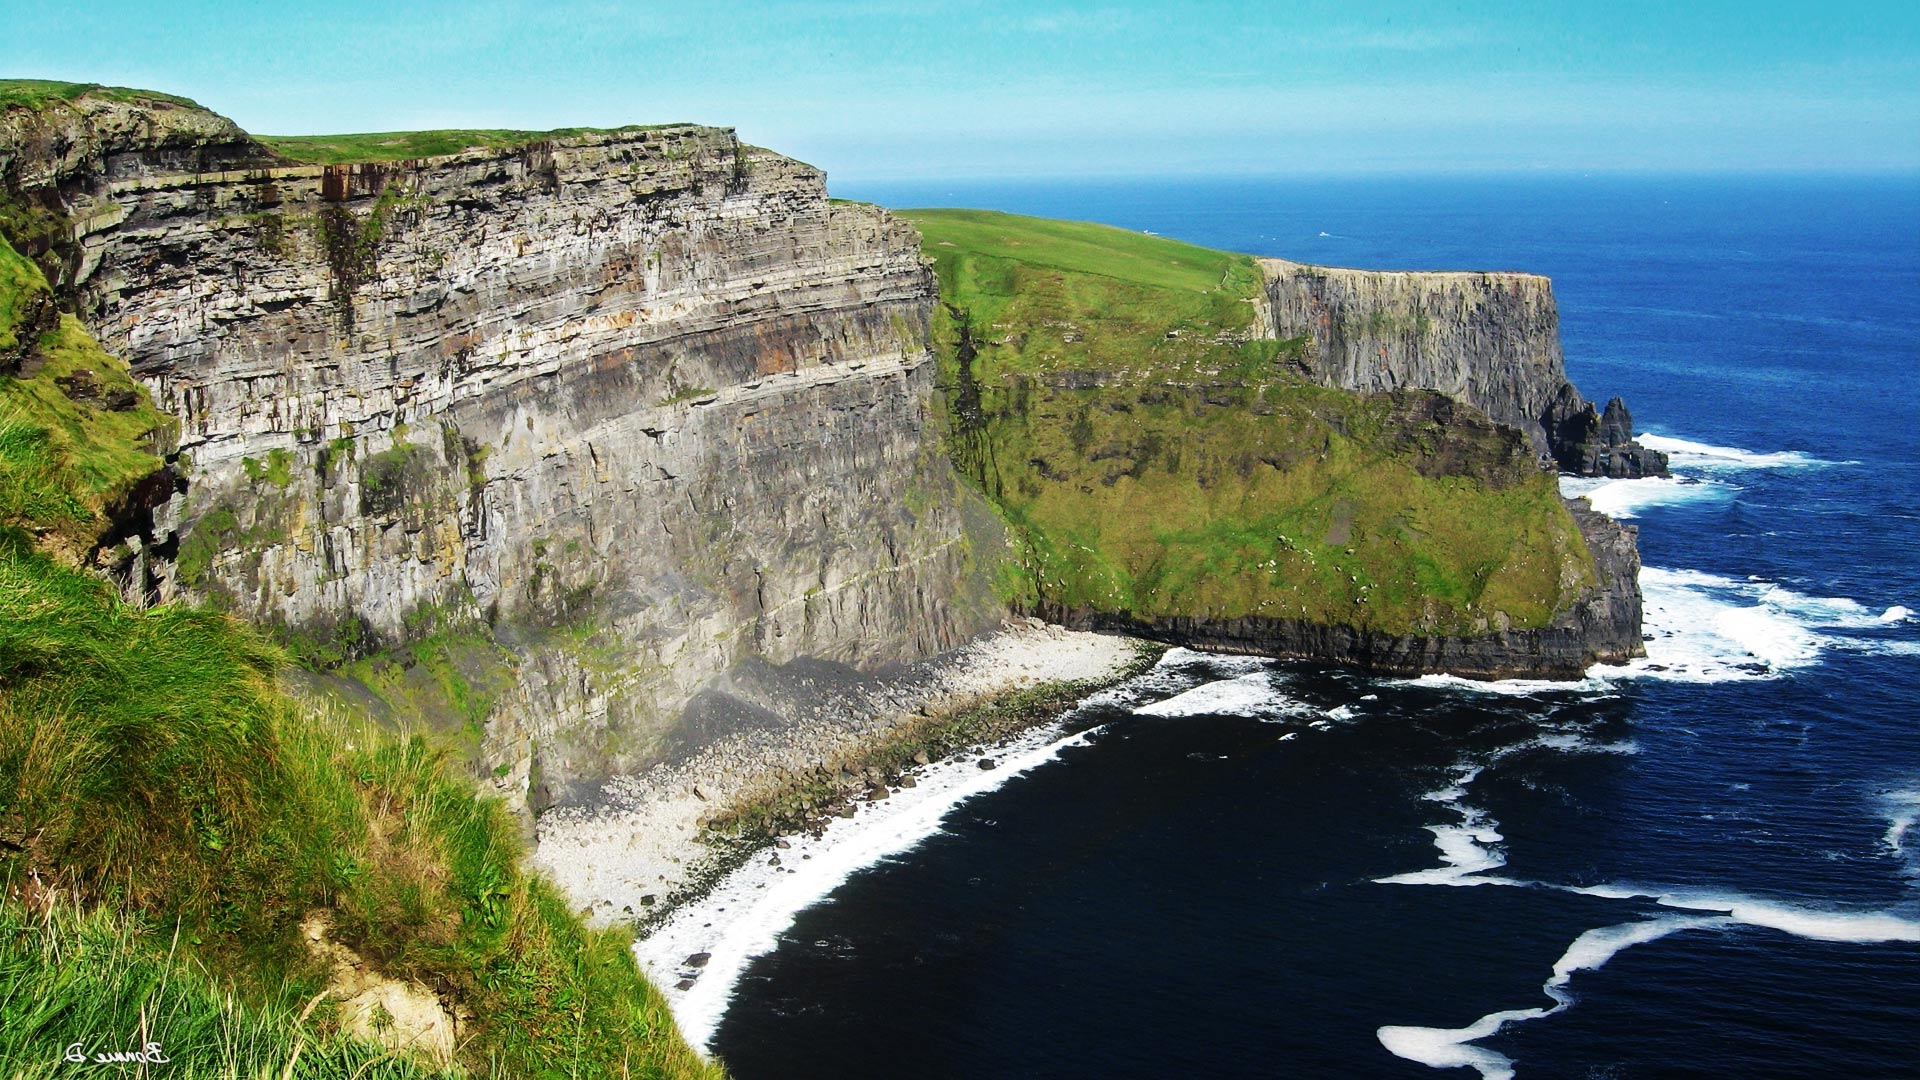 Cliffs_of_moher_Утесы_Ирландии_графство_Клэр.